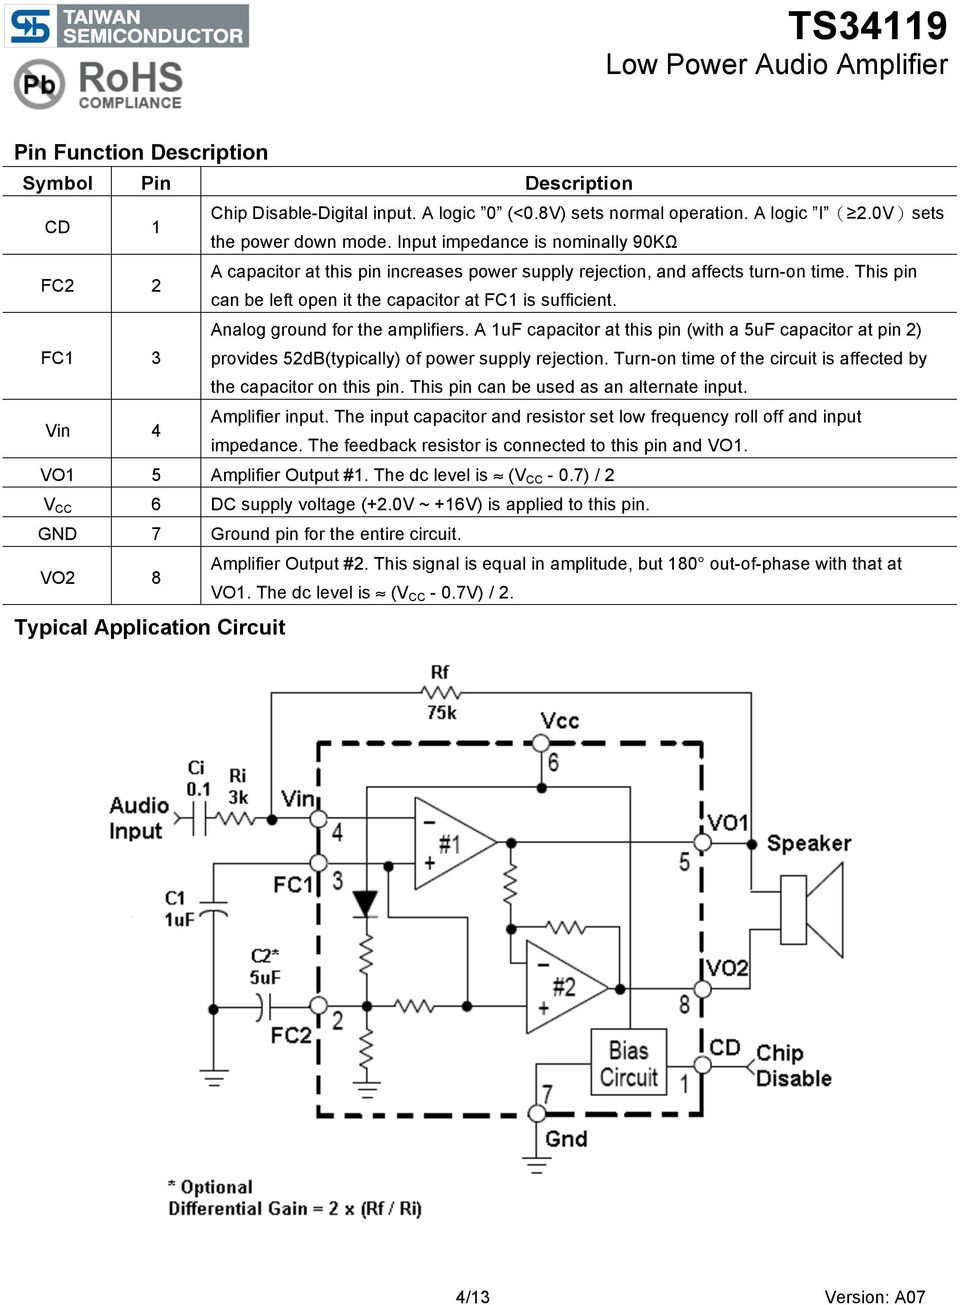 Ts34119 Low Power Audio Amplifier Pdf Circuit Using 741 Op Amp A 12 Watt Operating On Dual Fc1 3 Analog Ground For The Amplifiers 1uf Capacitor At This Pin With